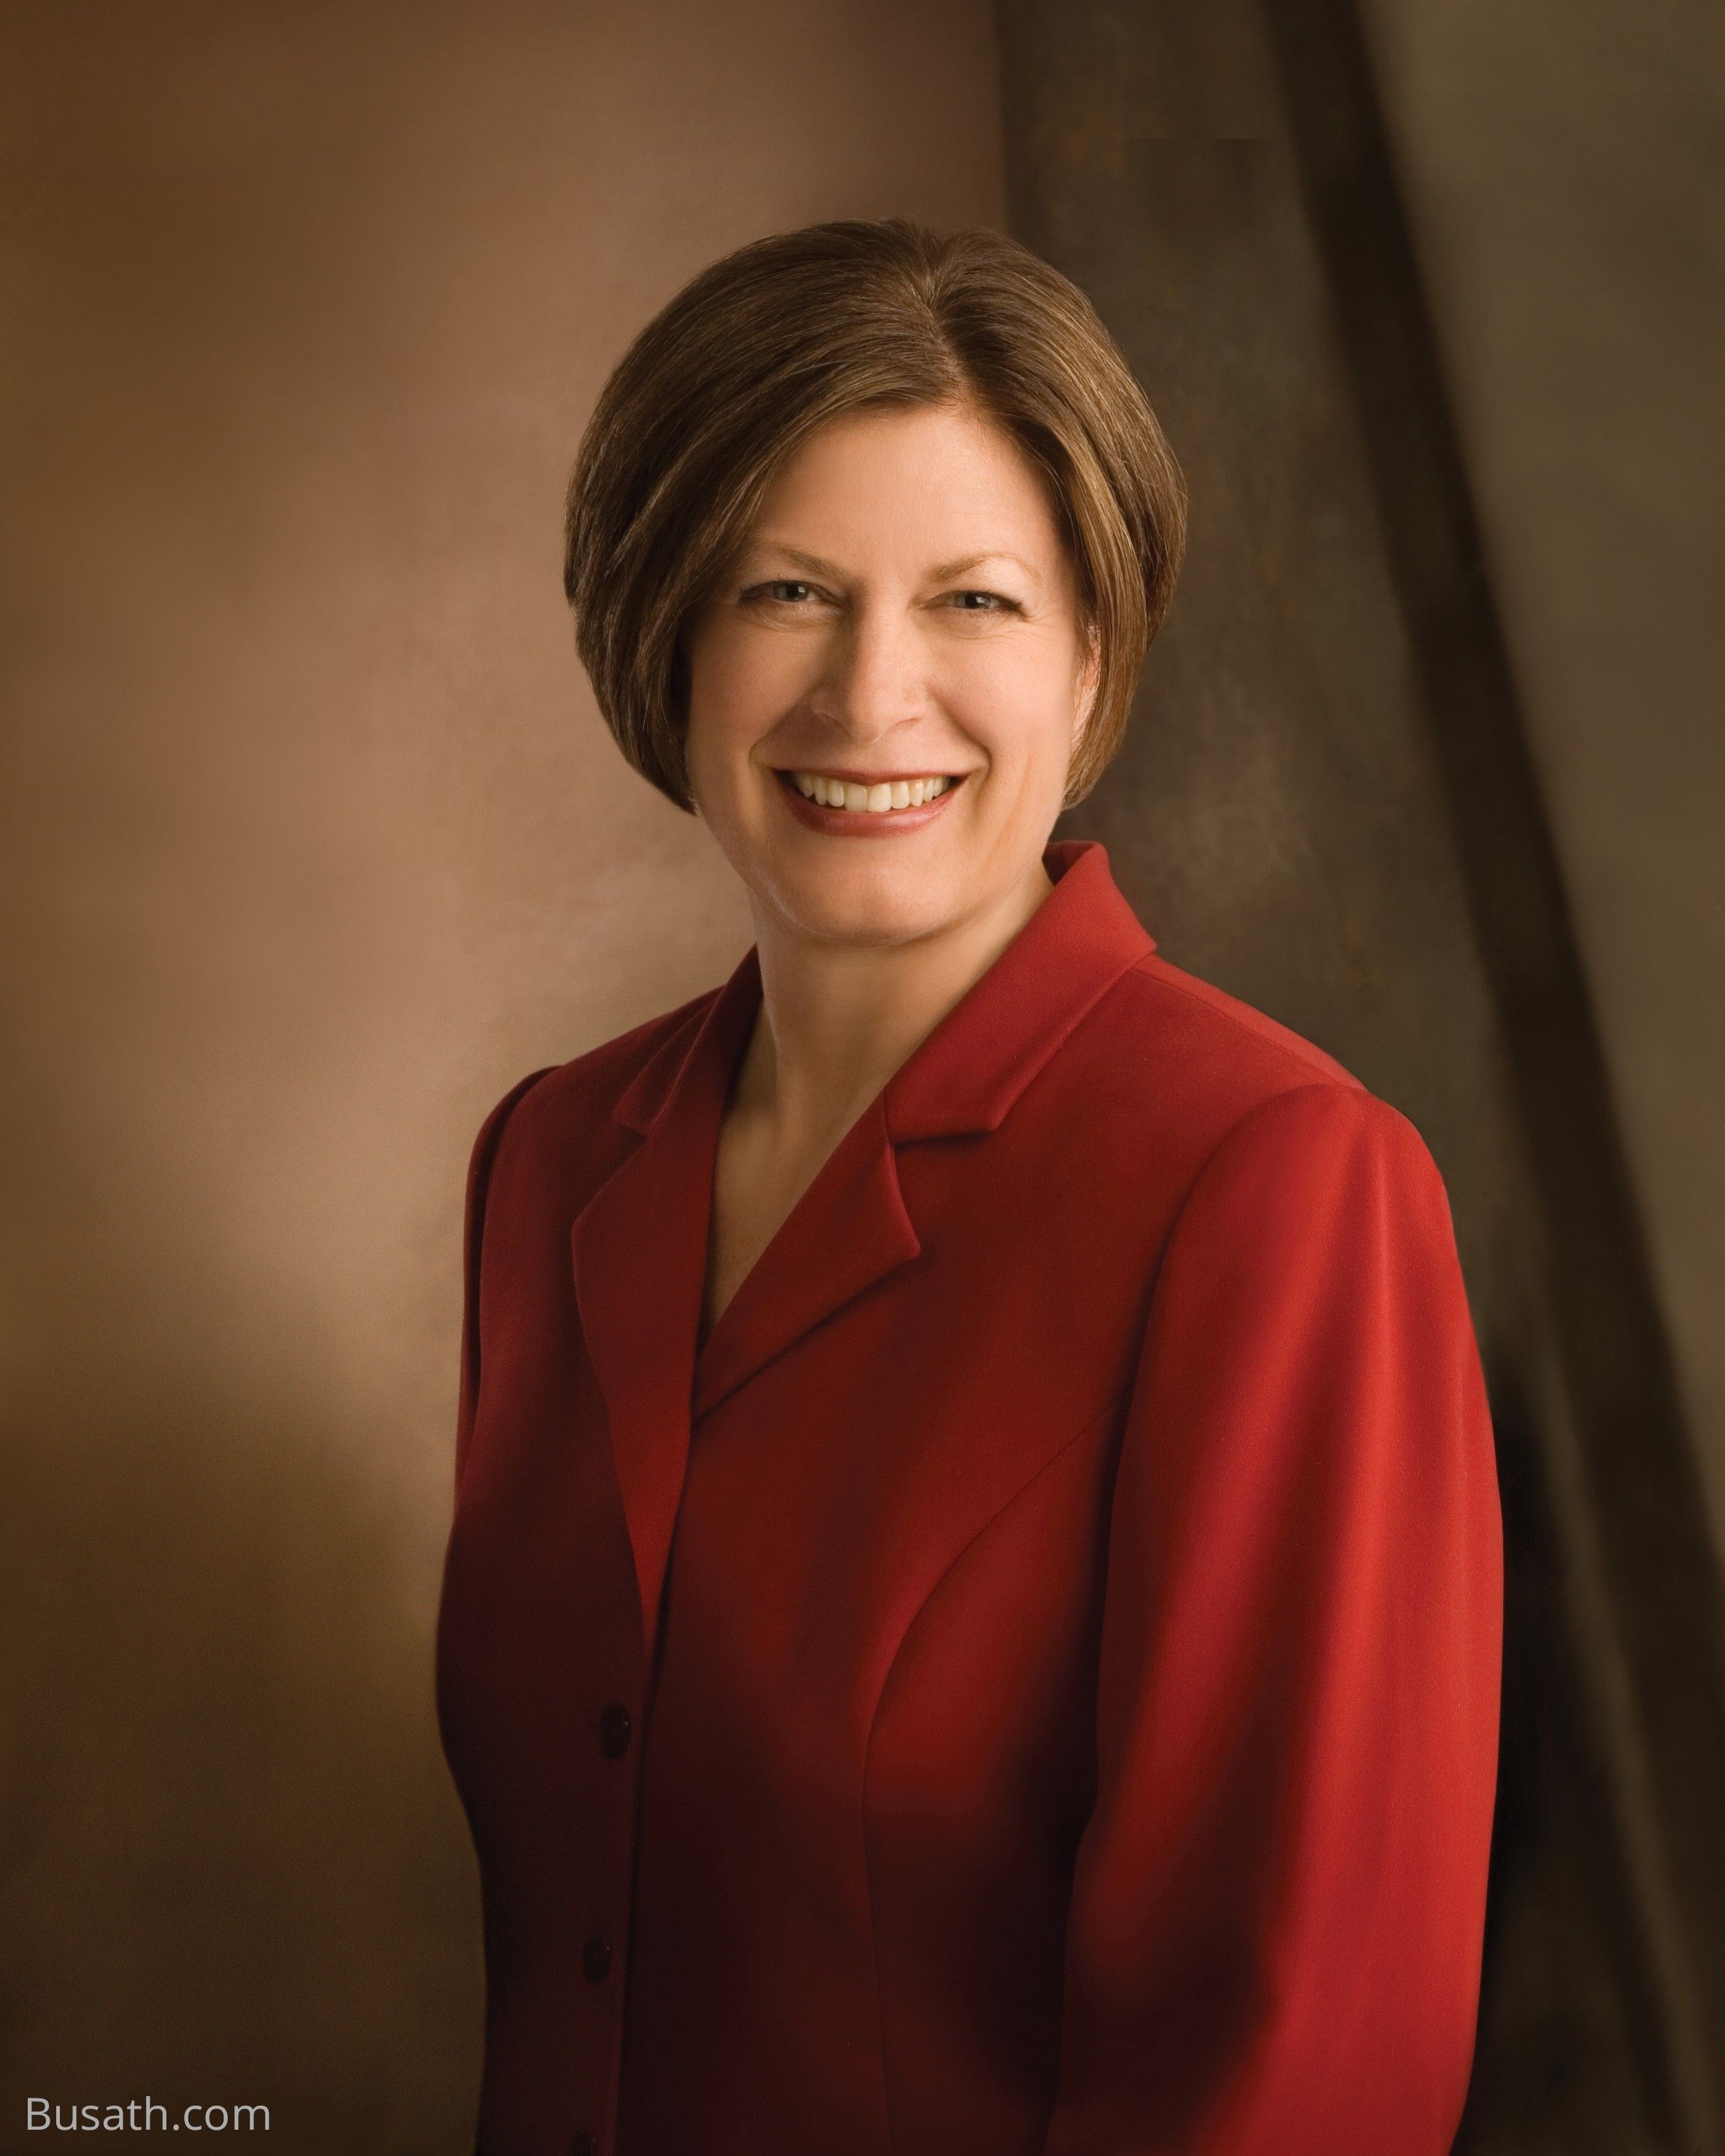 A portrait of Julie Bangerter Beck, who was the 15th general president of the Relief Society from 2007 to 2012.